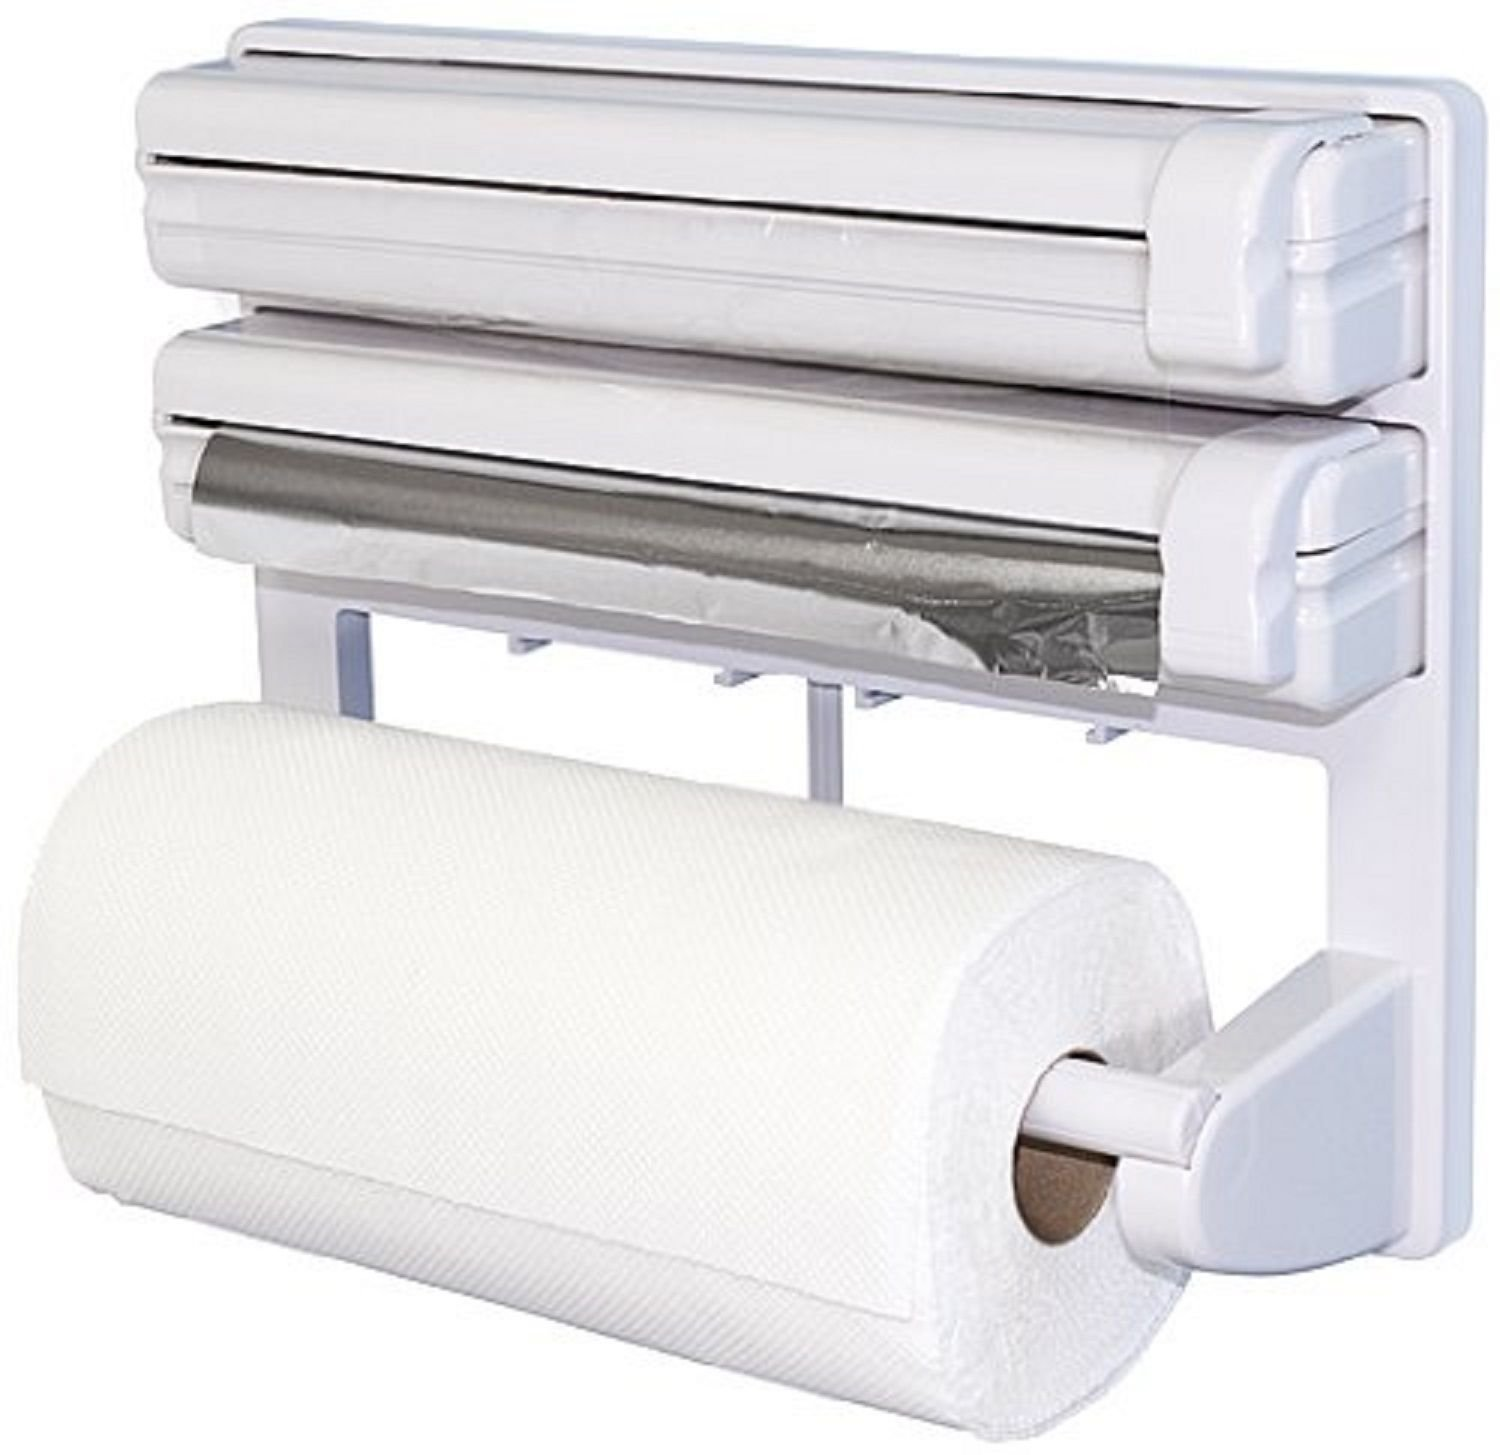 Kitchen Roll Holders Uk Kitchen Paper Towel Roll Dispenser Wall Mounted Cling Film Foil Rack Holders Home Furniture Diy Acuteq Co